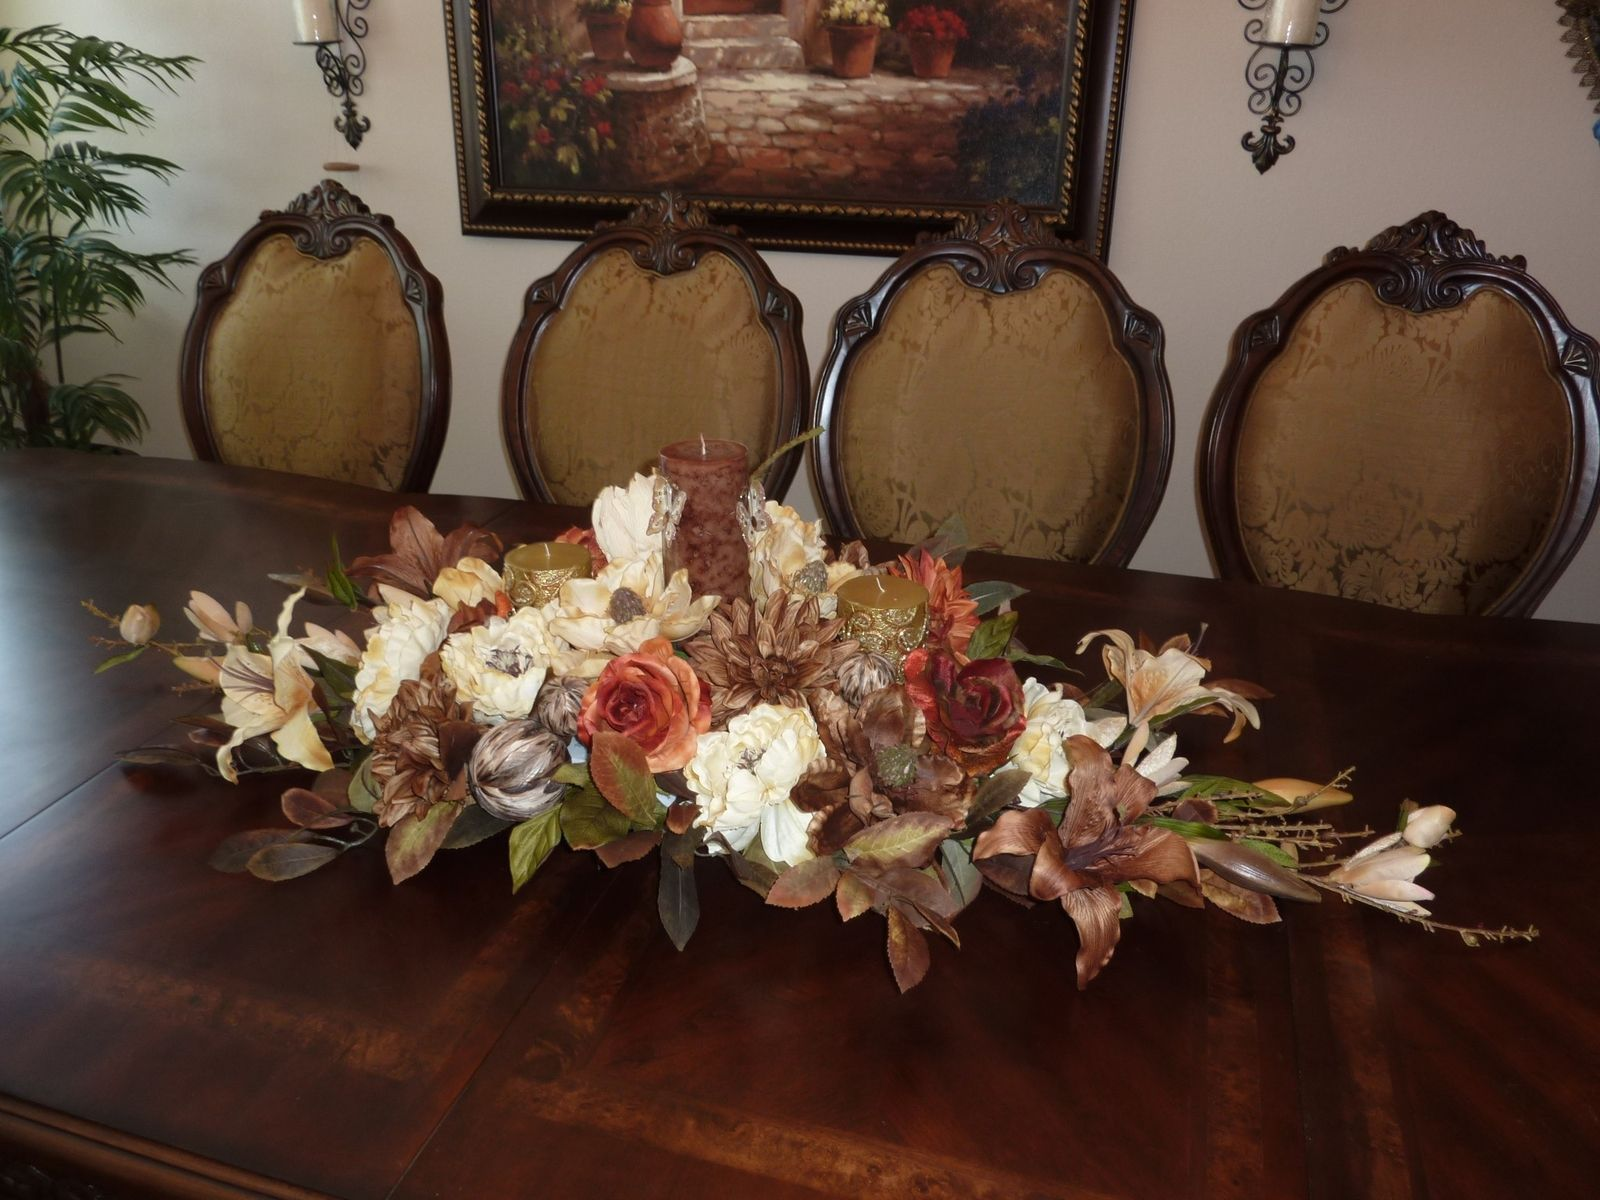 Best Dining Room Table Floral Arrangements Ideas Orchidlagoon Com Dining Room Table Centerpieces Dining Room Centerpiece Table Floral Arrangements